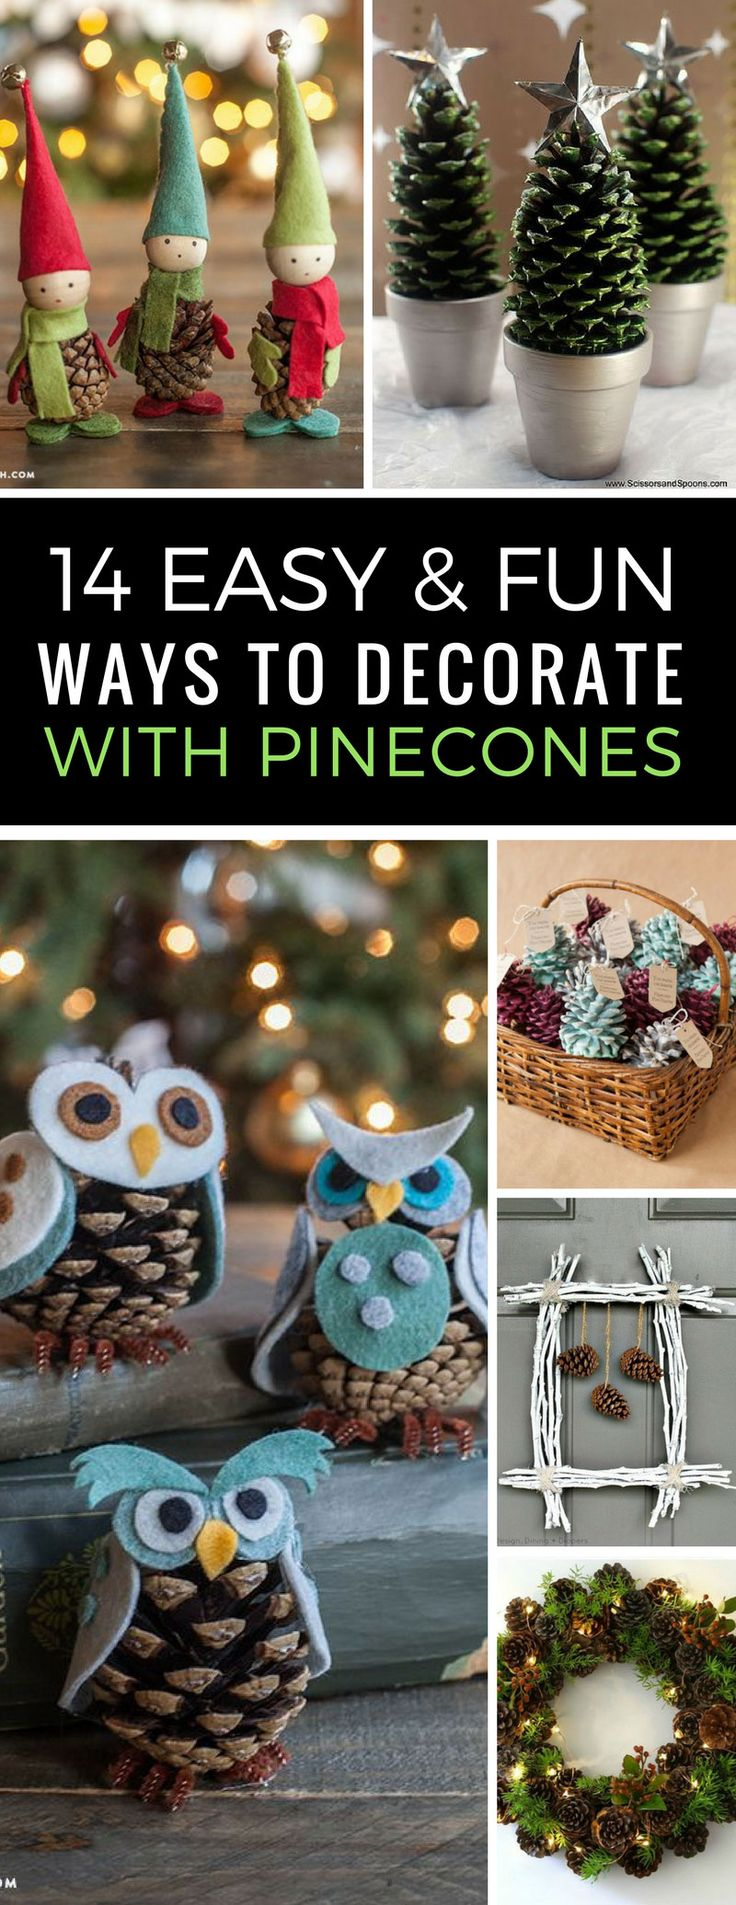 14 Easy Pinecone Crafts to Decorate Your